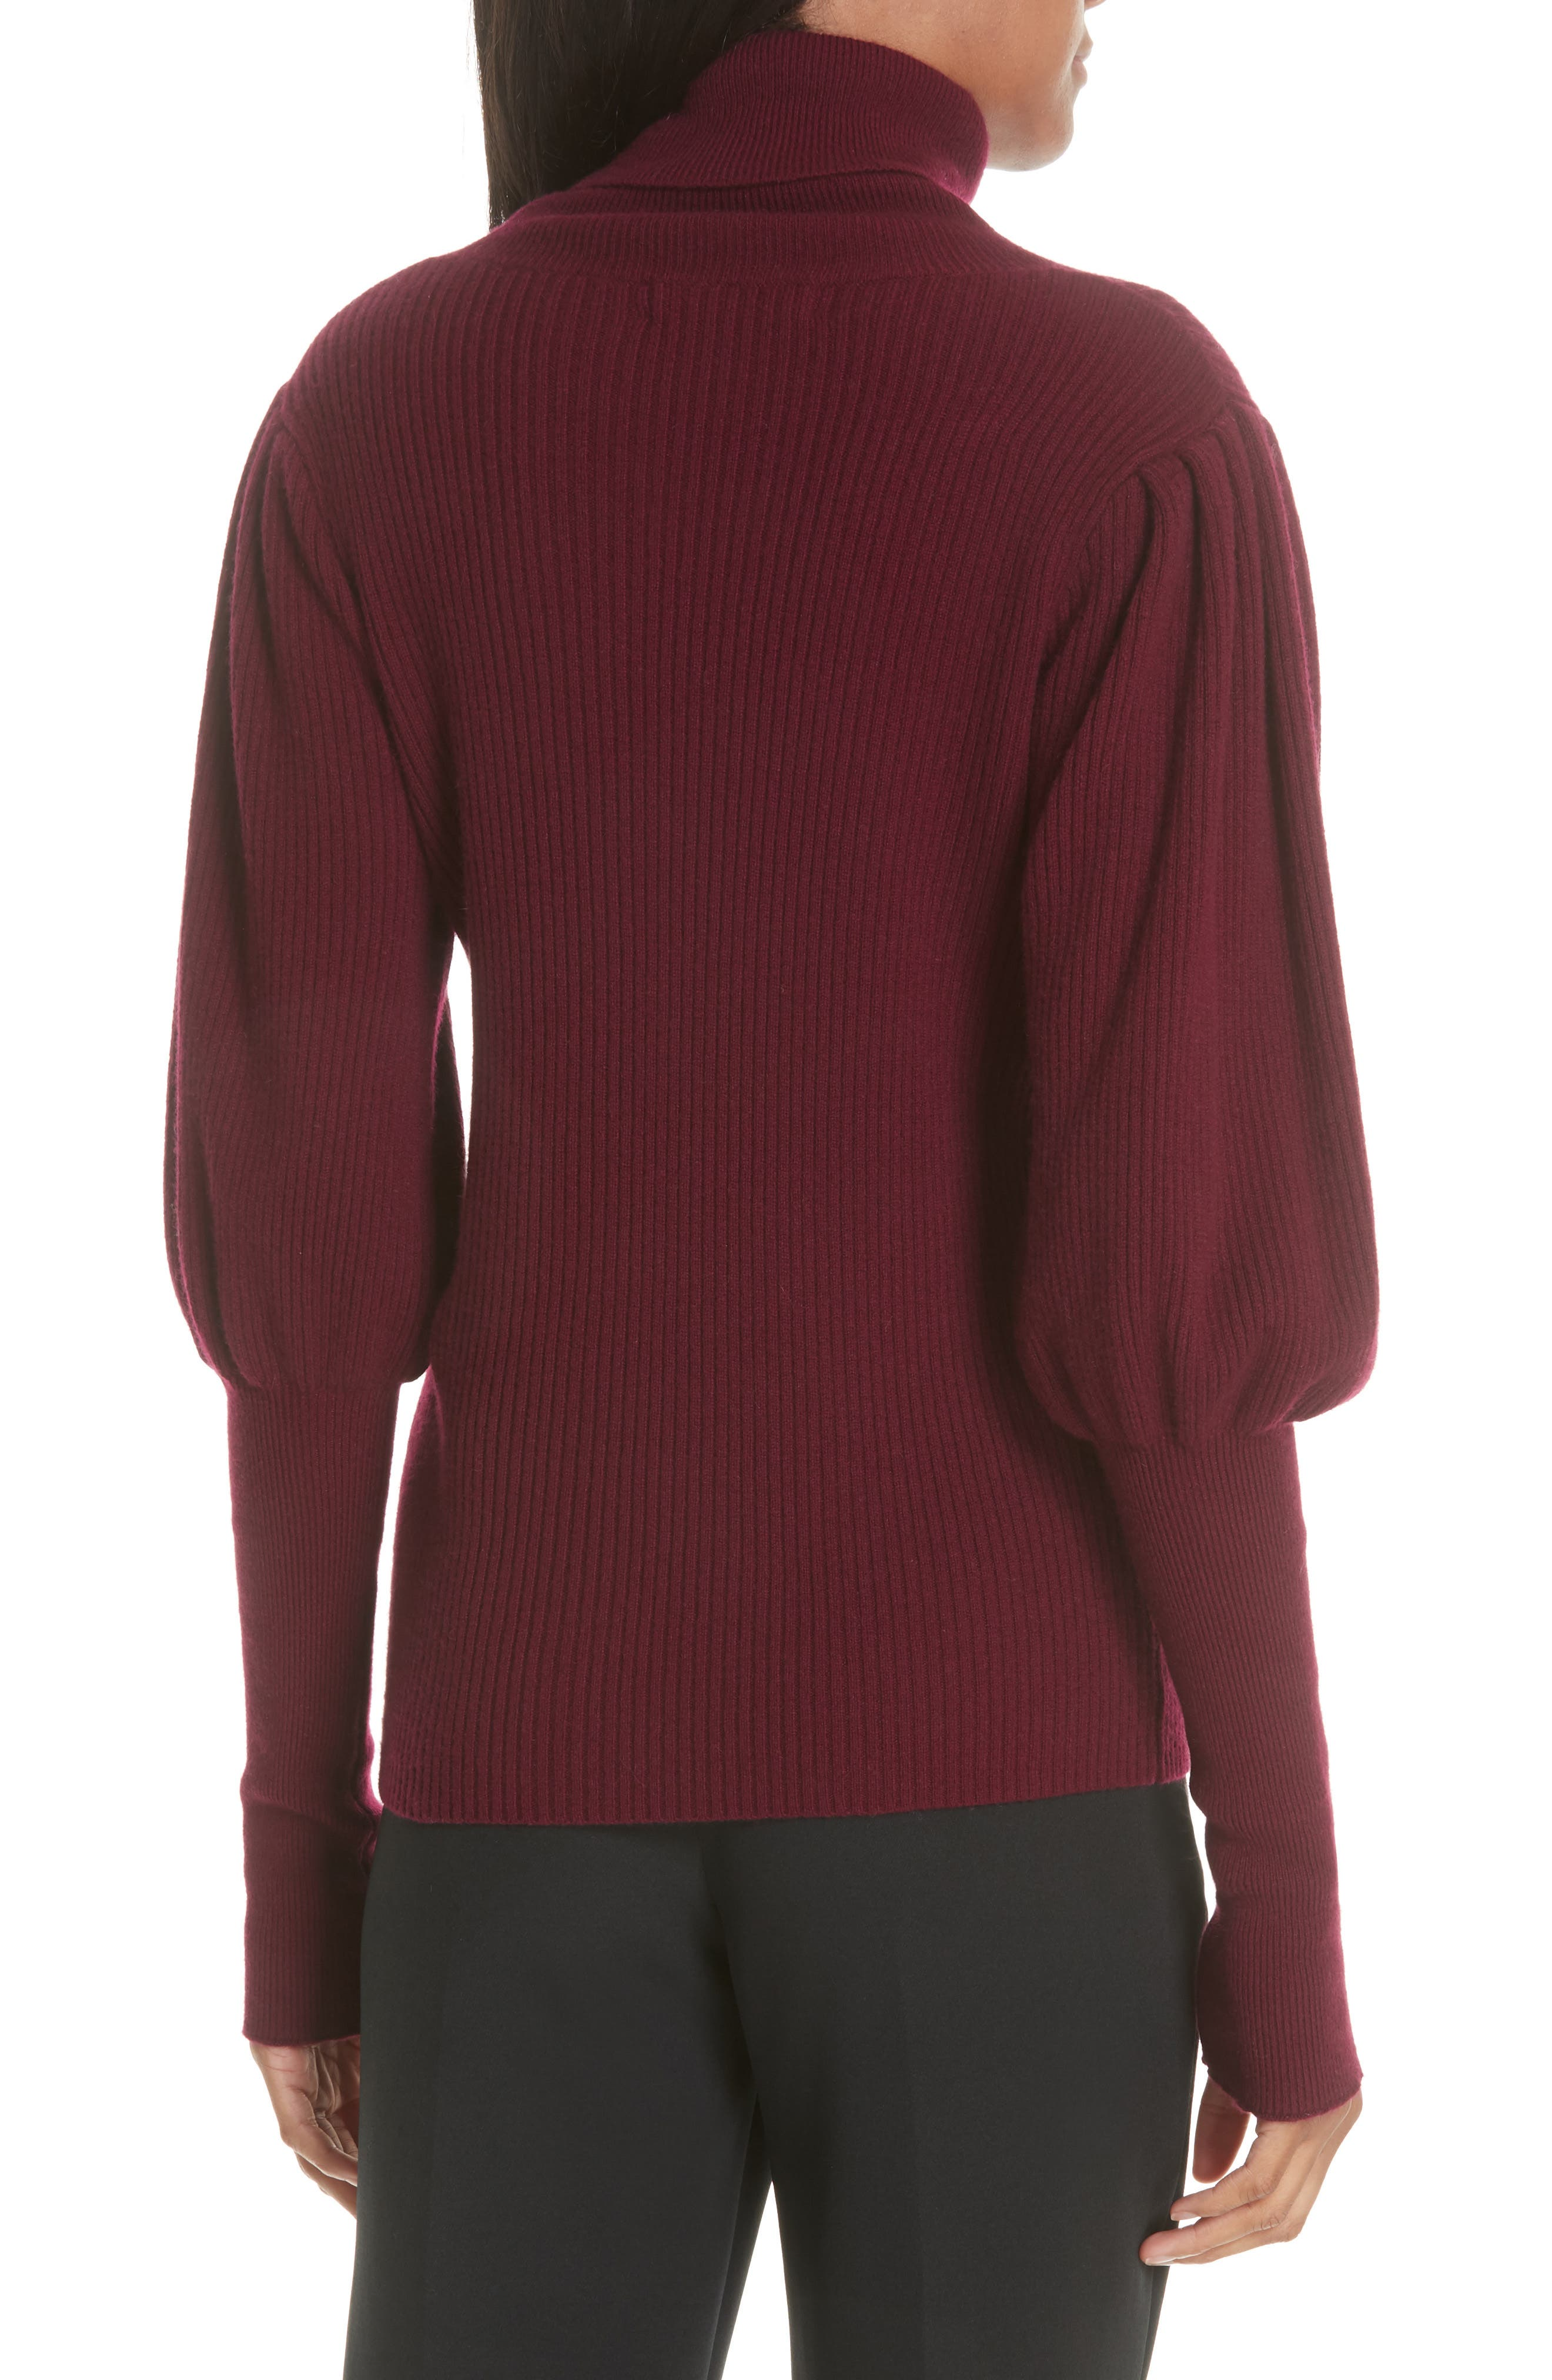 Bishop Sleeve Cashmere Sweater,                             Alternate thumbnail 2, color,                             933